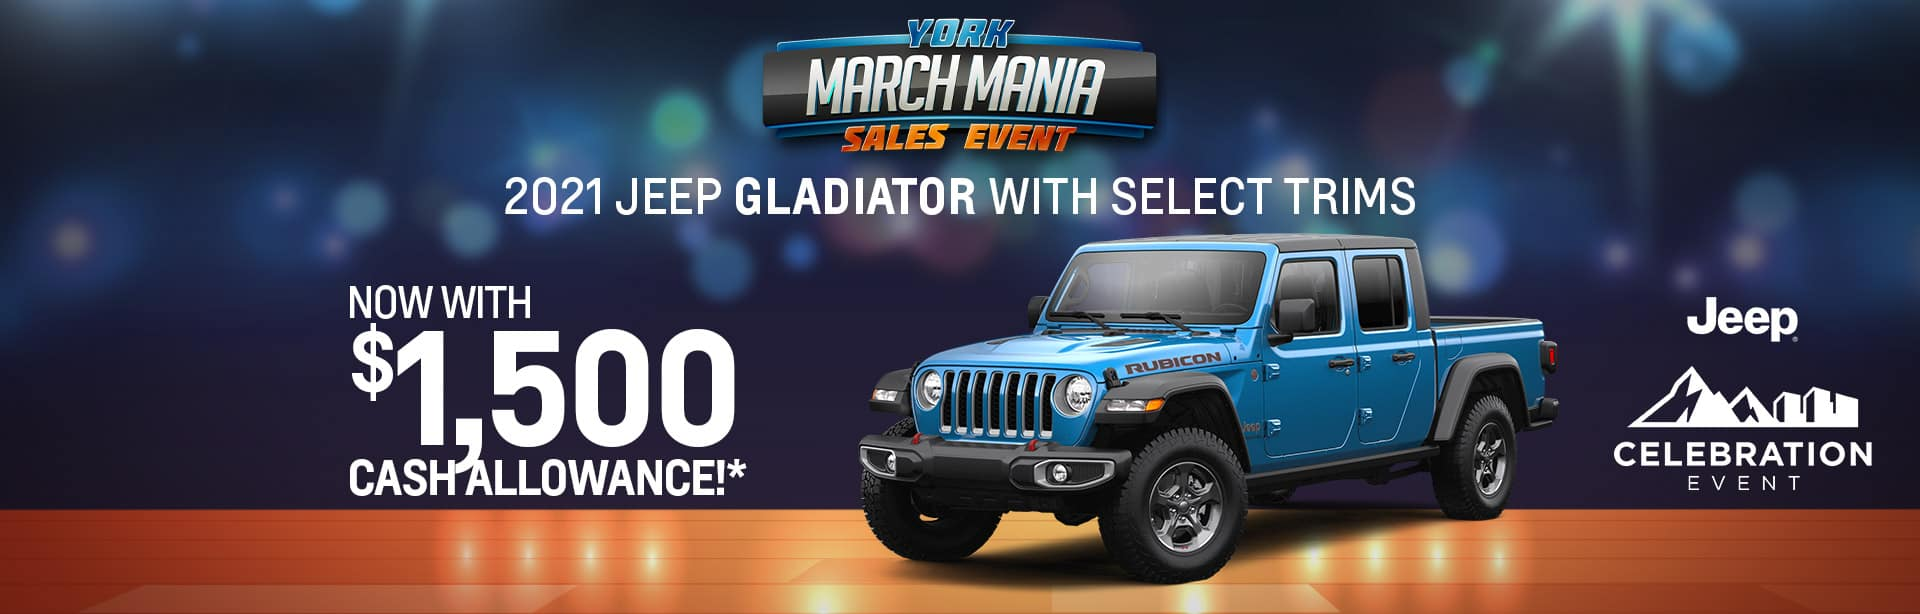 2021 Jeep Gladiator Rebate offer offer near Indianapolis IN